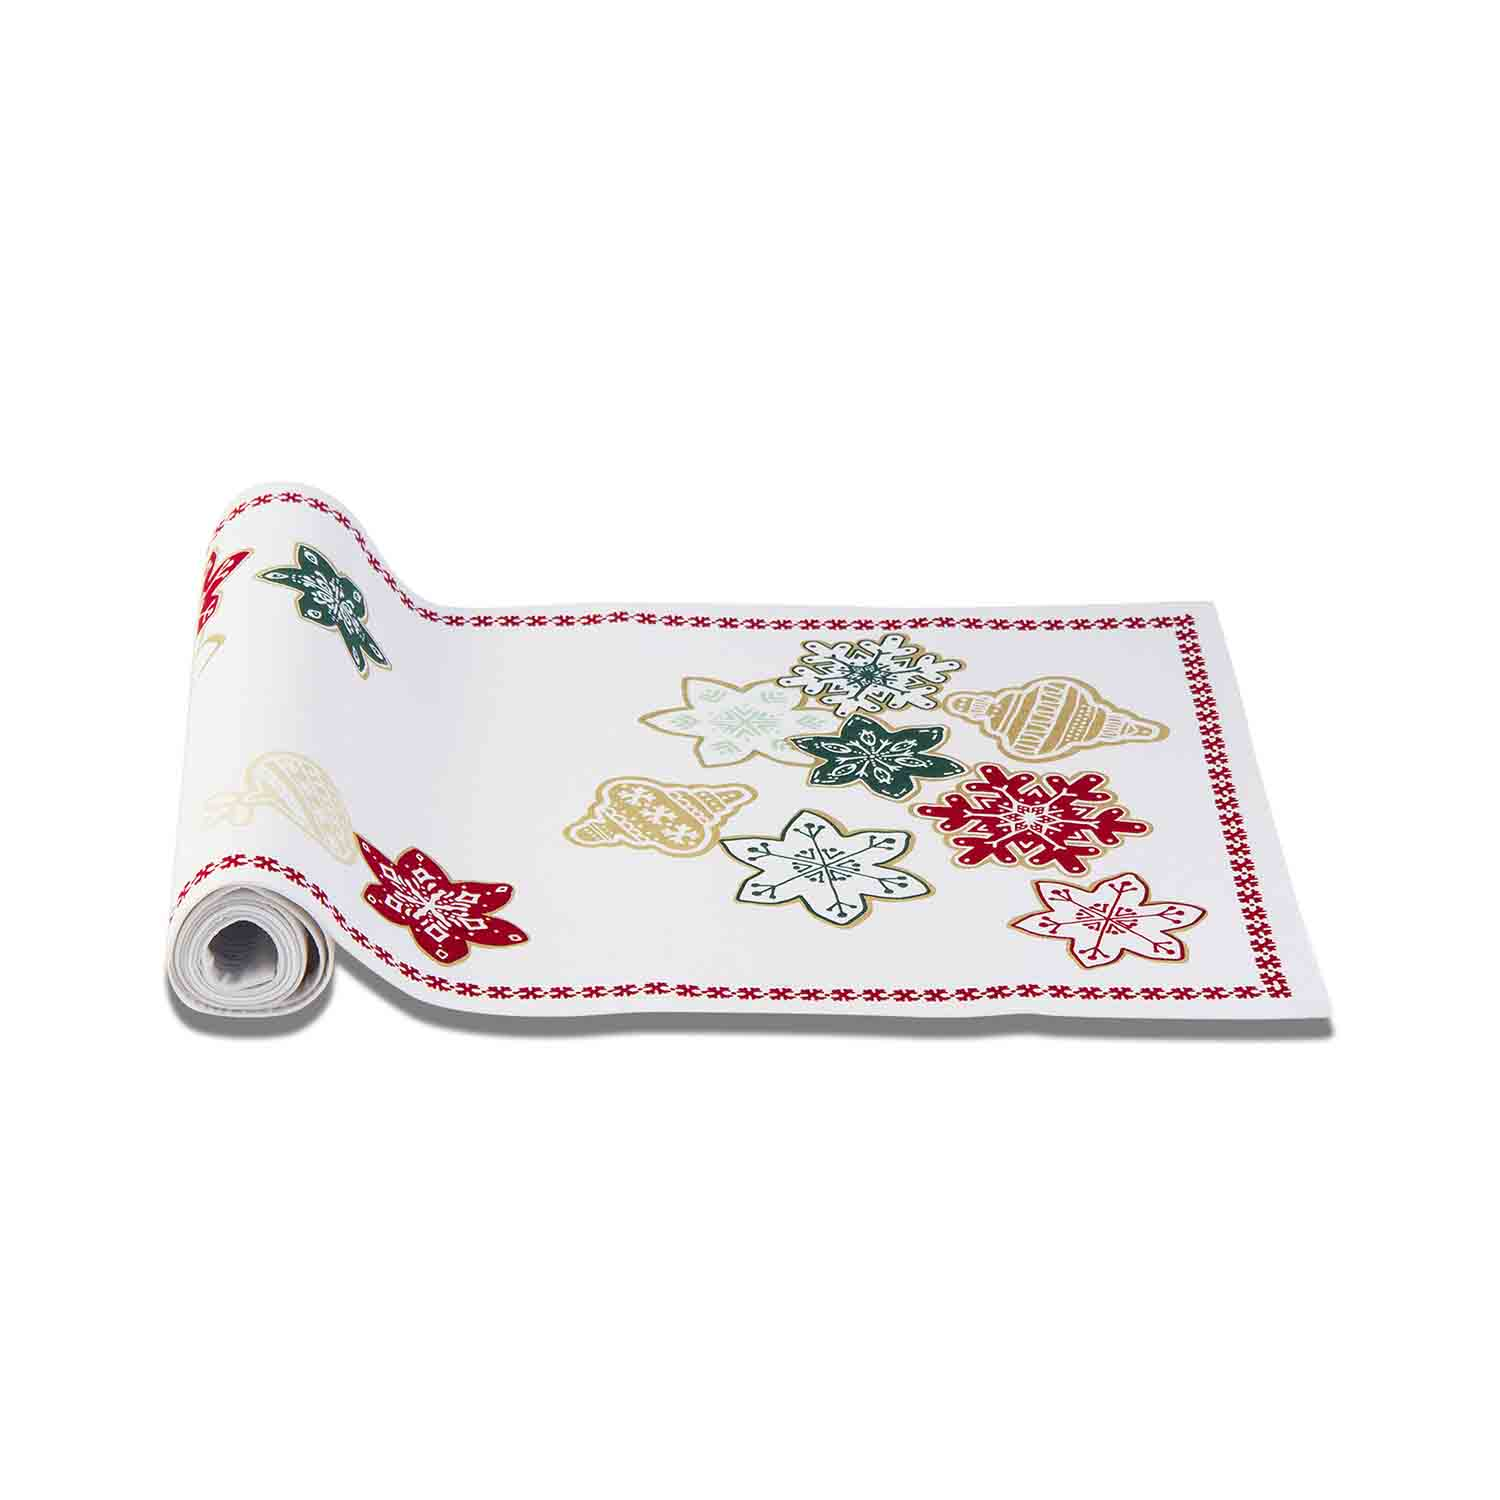 Sugar Cookie Design Table Runner